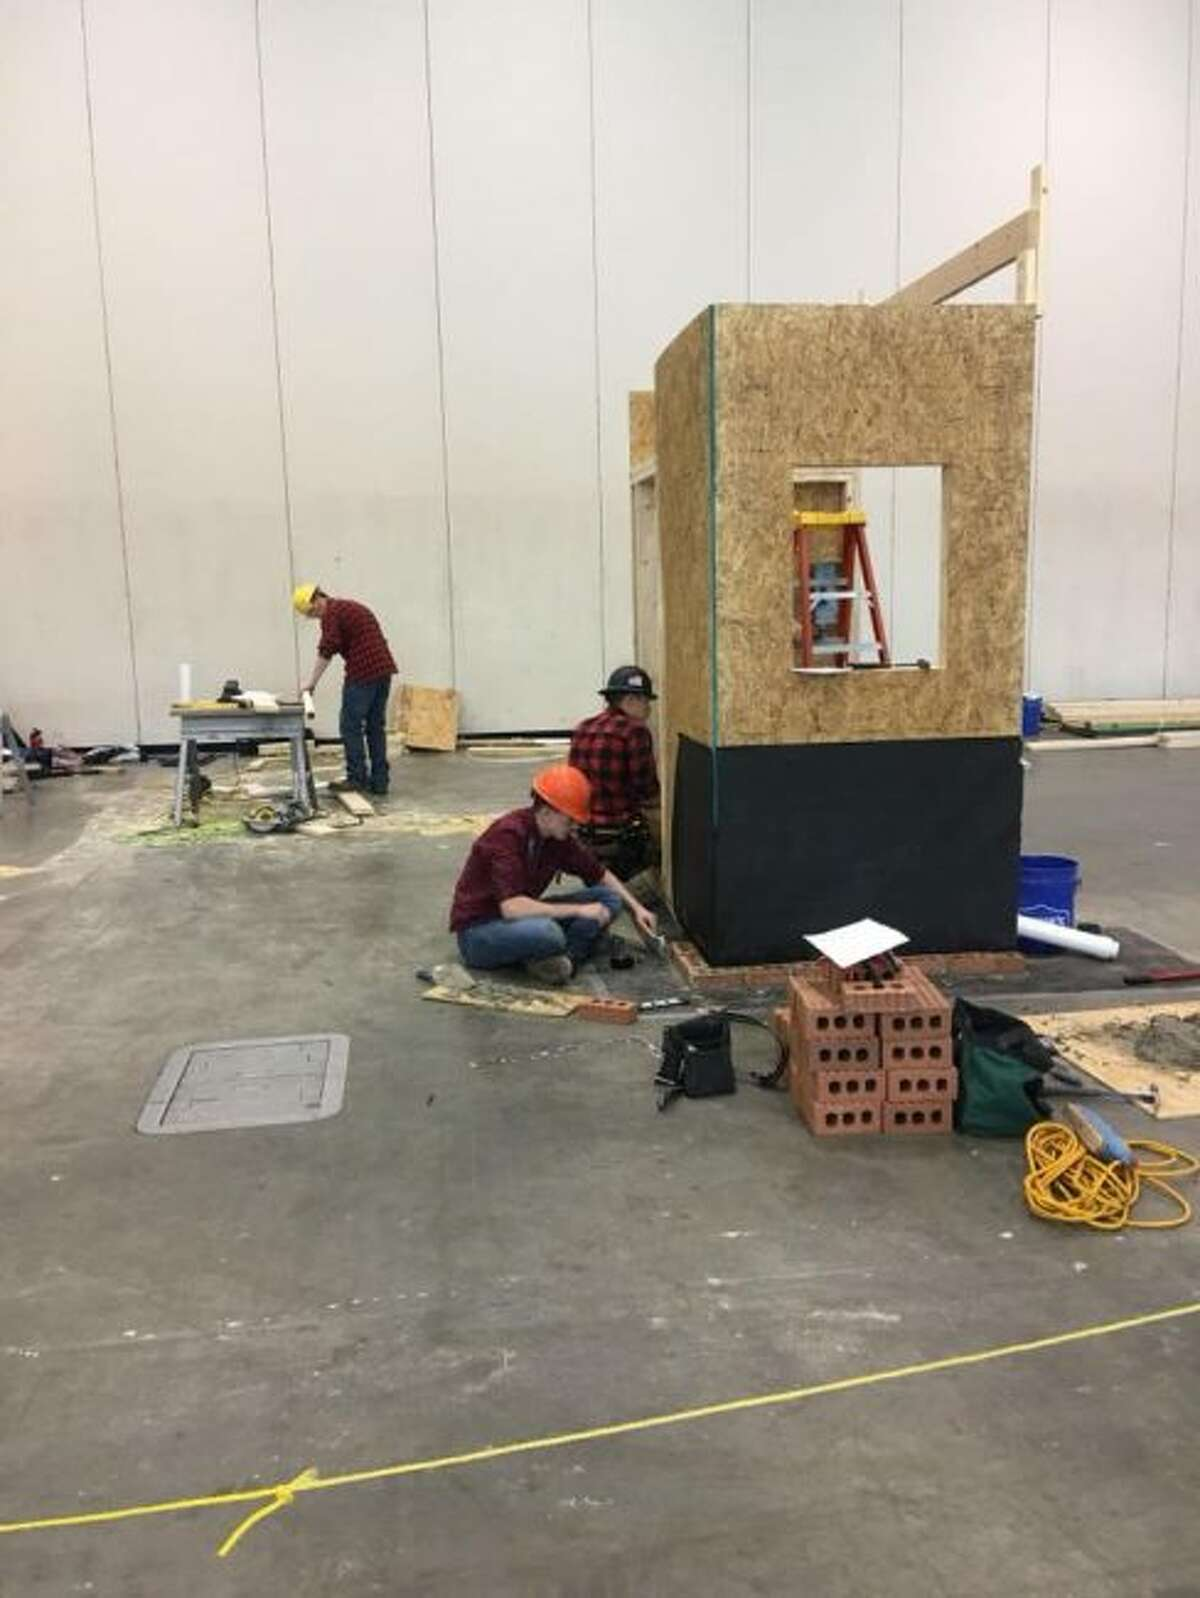 The MOCC construction team, consisting of Basil Beers, Nicholas McHugh, Tyler Schmitt and William Weinberg, competes during the SkillsUSA challenge. Overall, 16 MOCC students earned bronze, silver or gold medals.